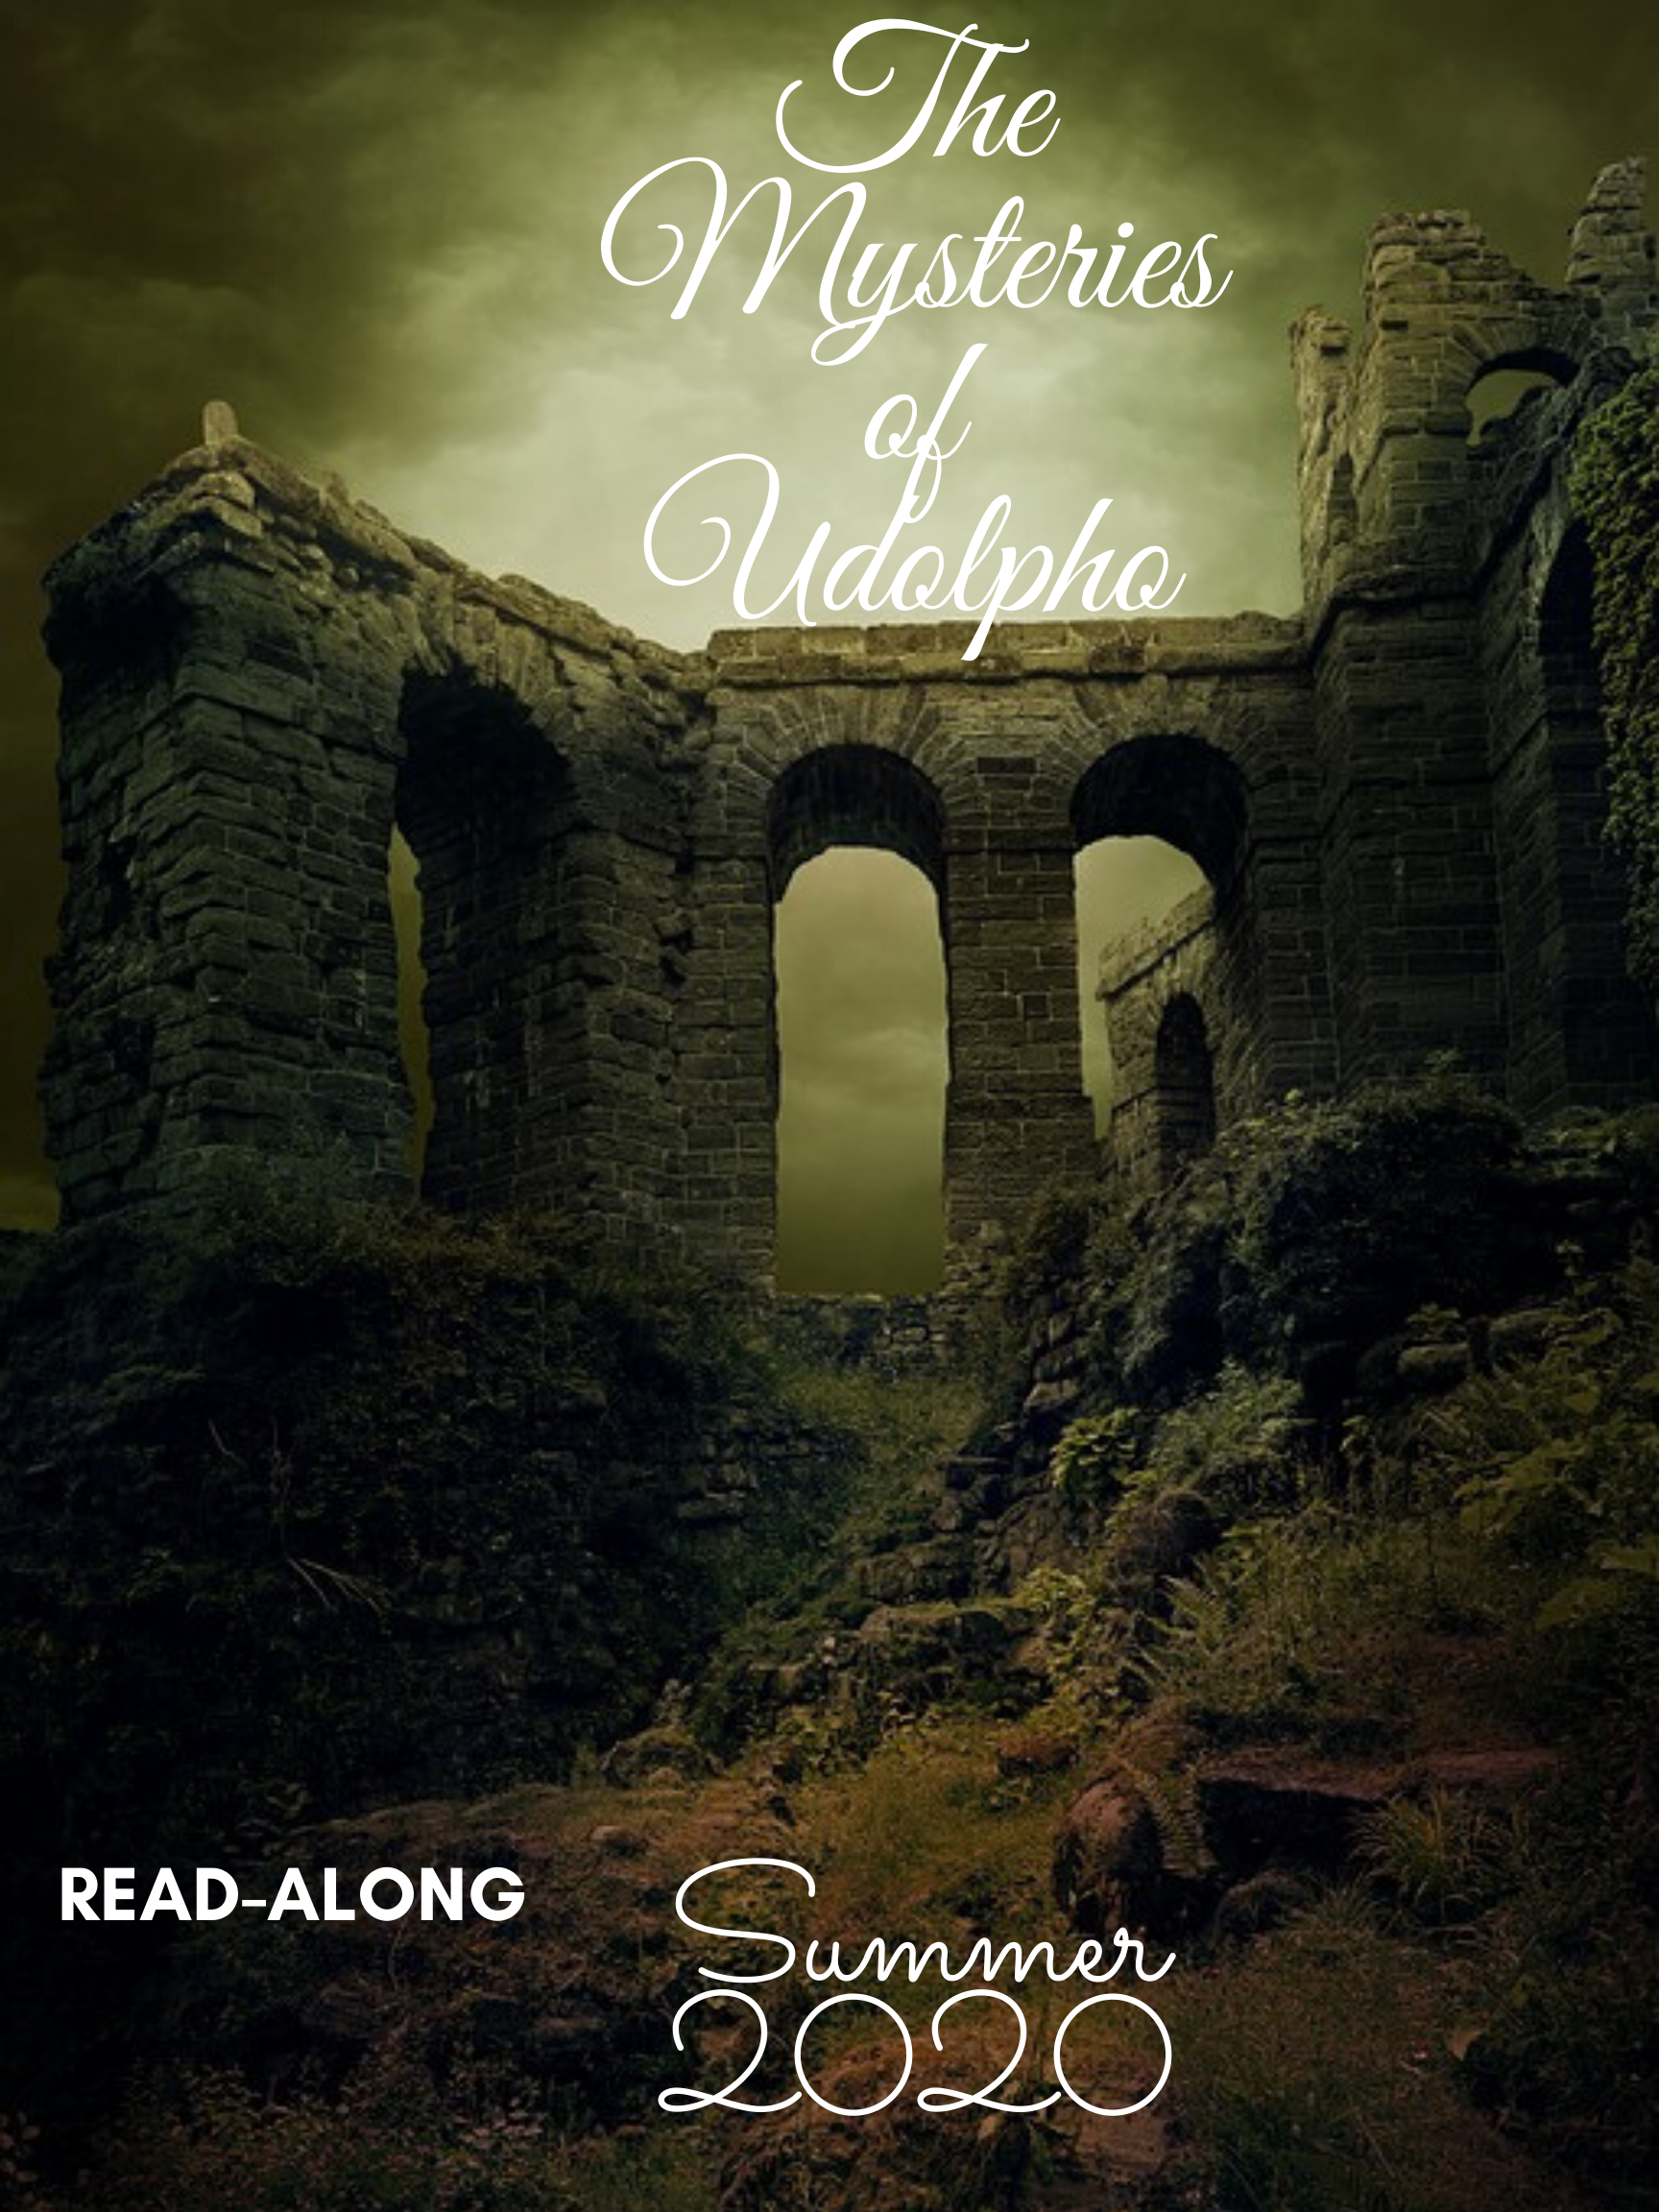 The Mysteries of Udolpho Read-Along